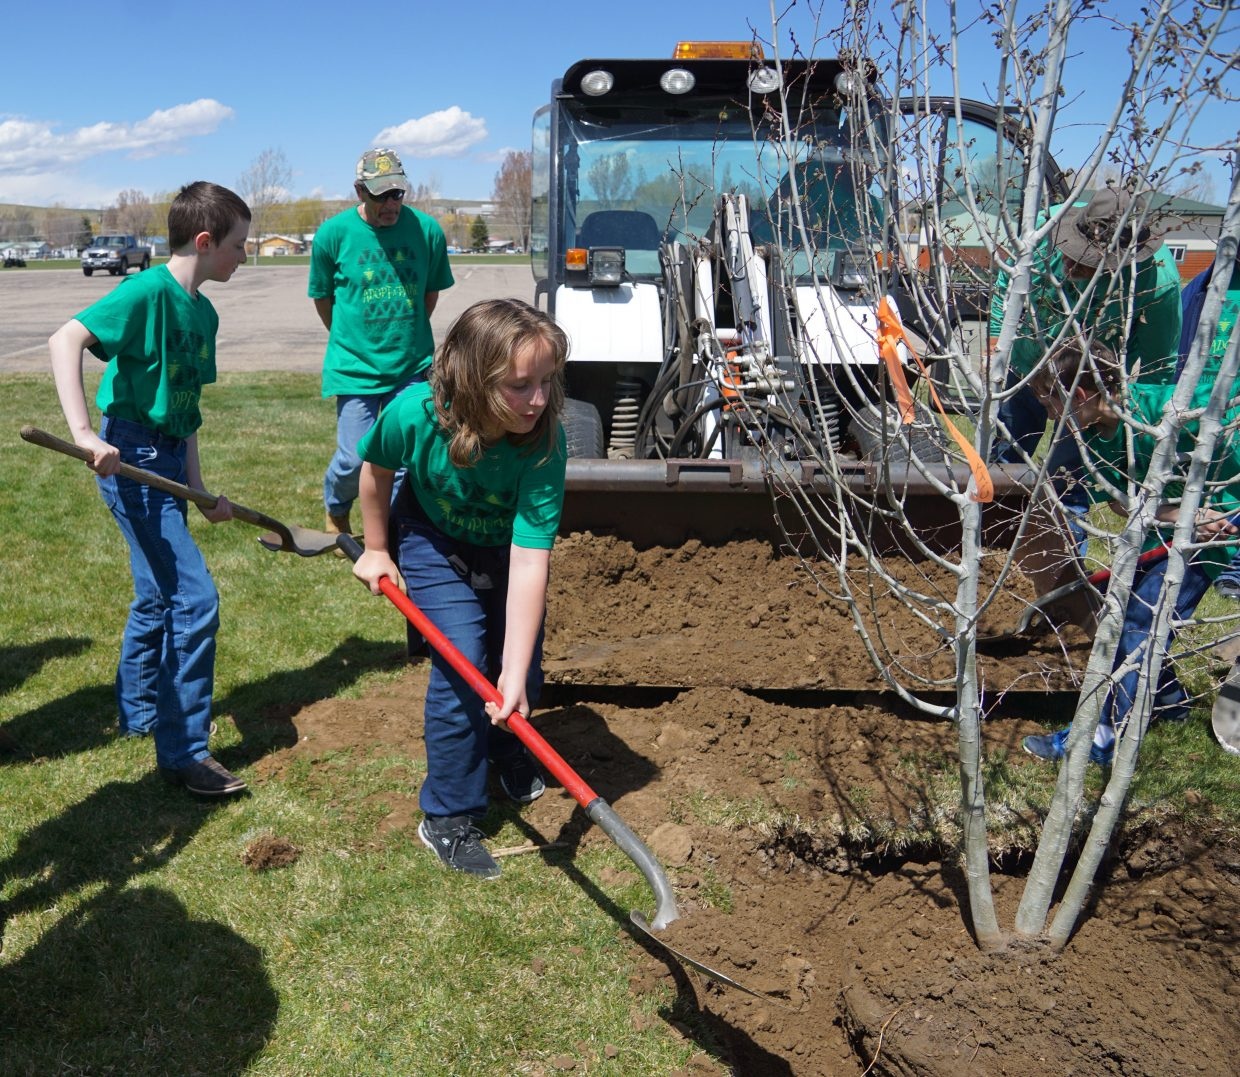 Students help City Parks and Recreation staff shovel dirt while planting a new clump of aspen trees at Woodbury Park, Monday, April 23.